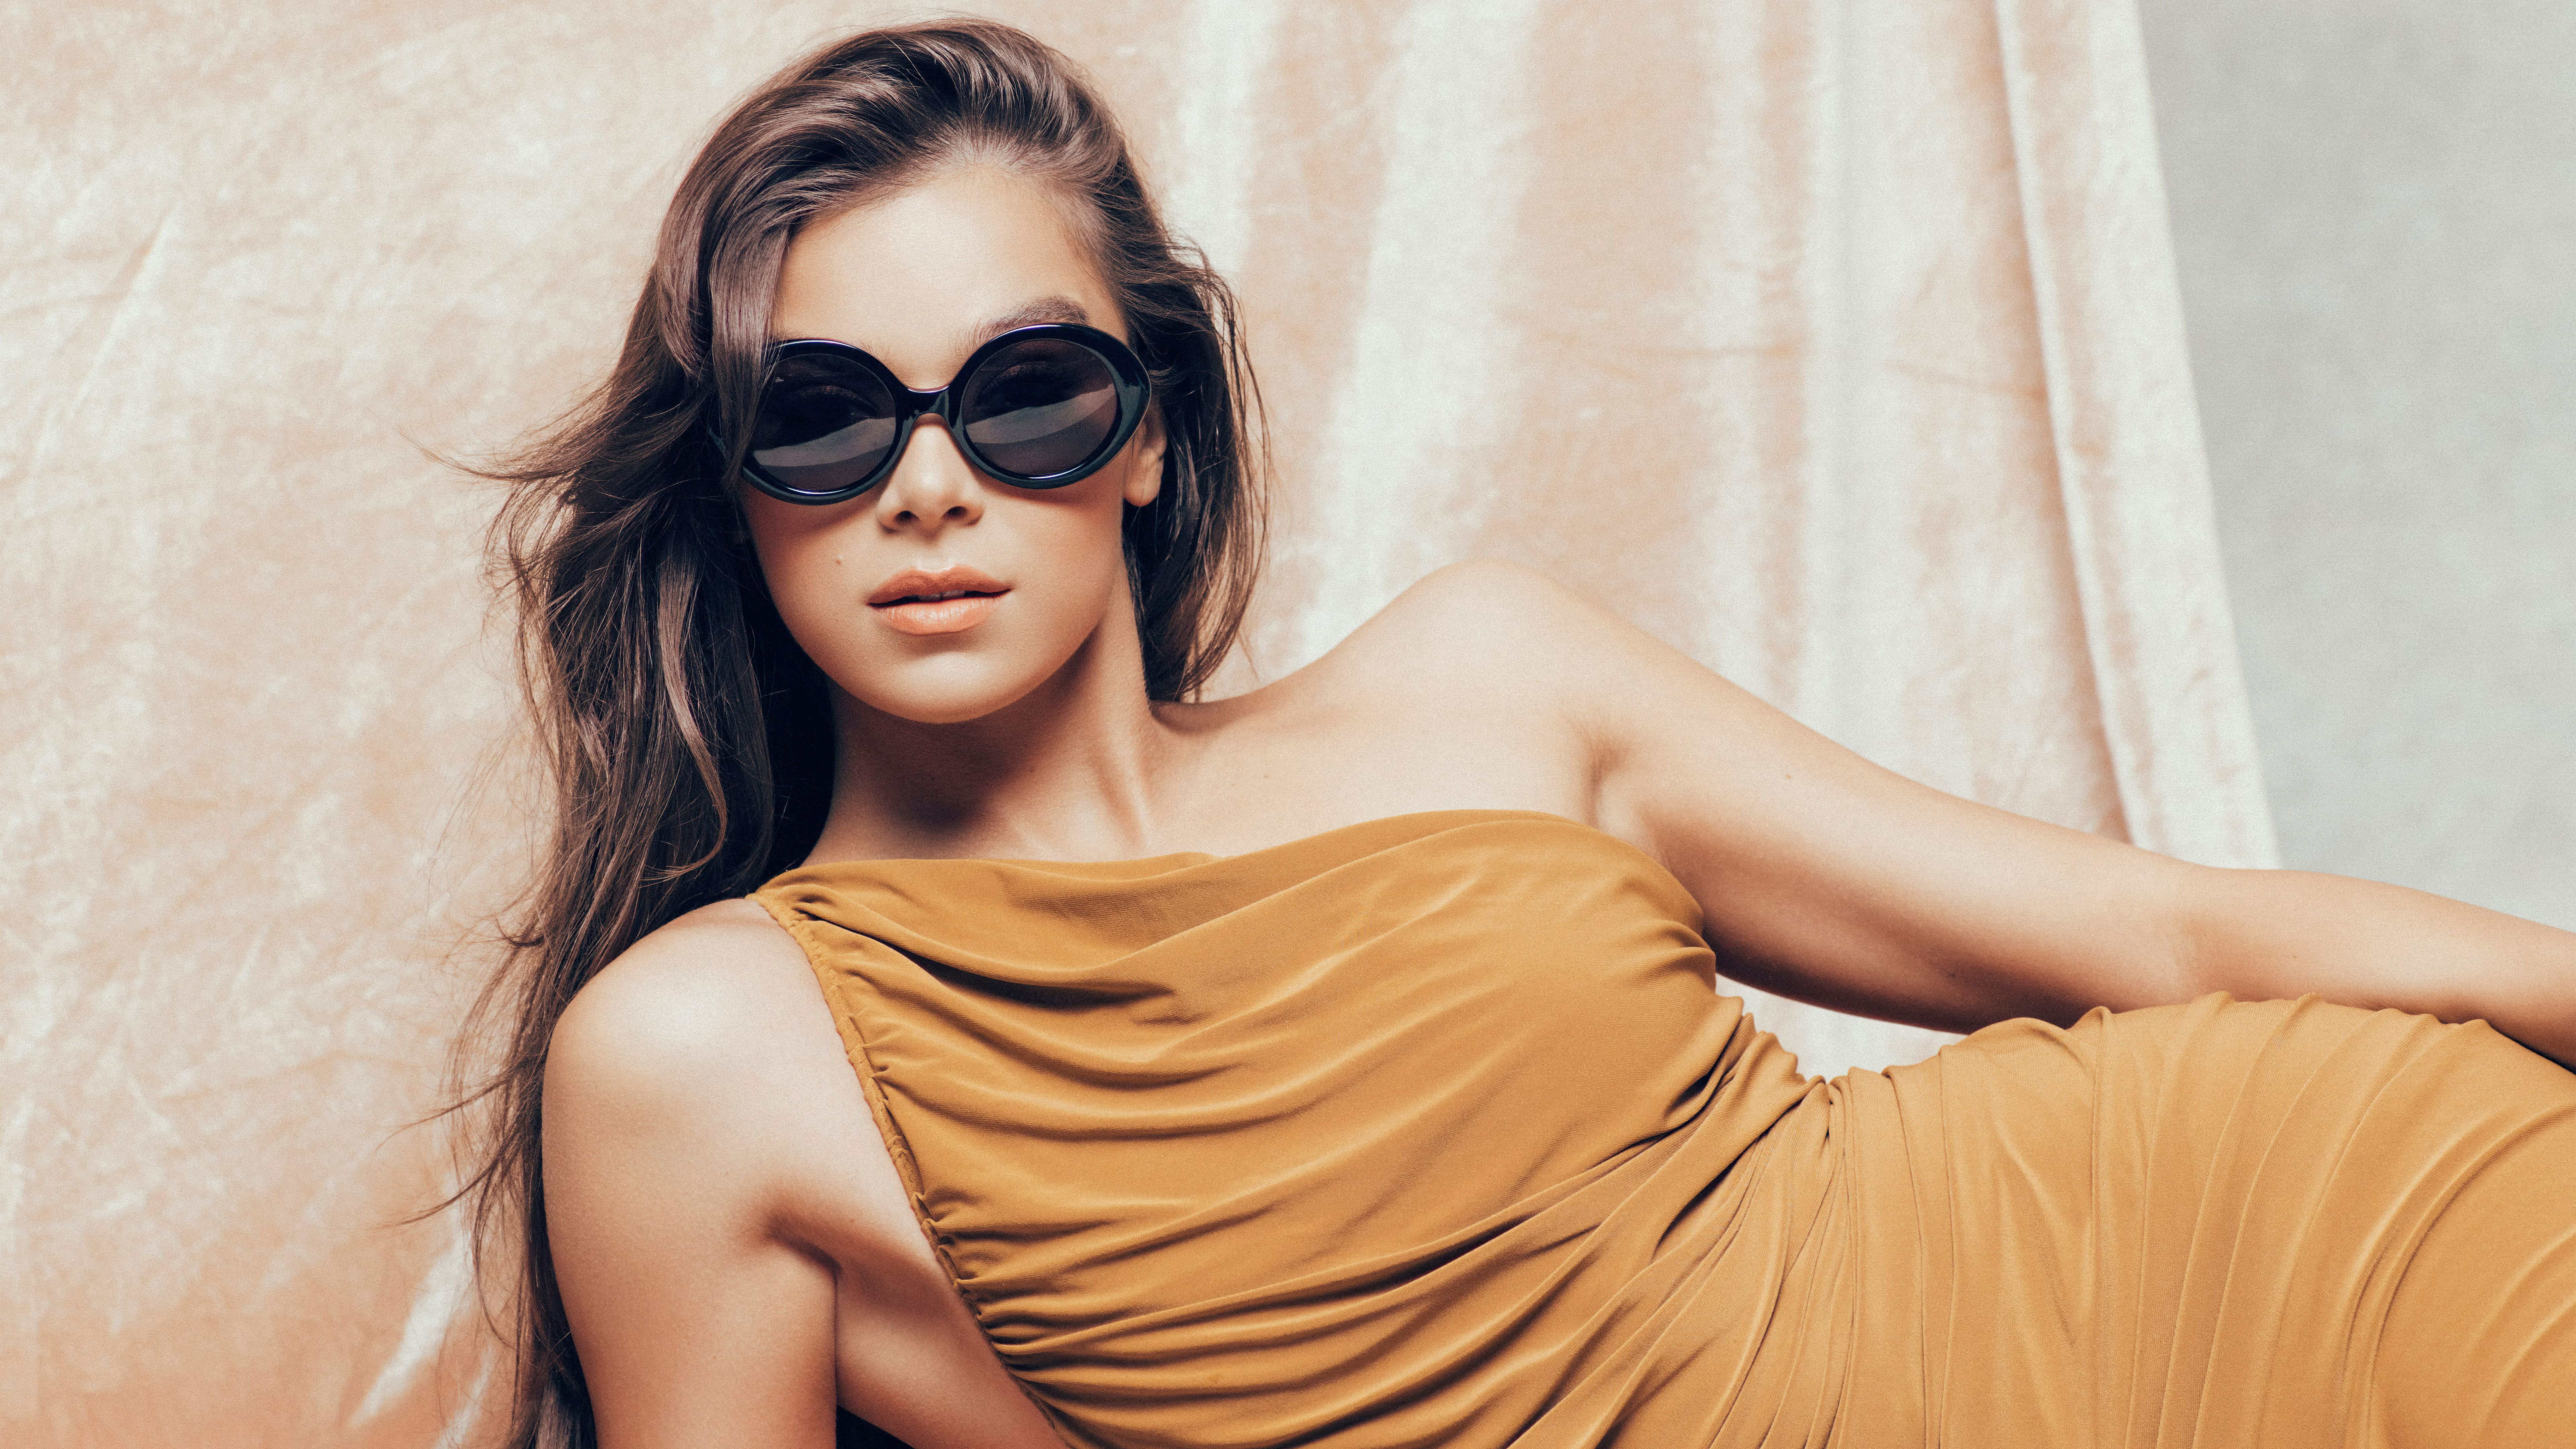 Wallpaper Hailee Steinfeld with sunglasses